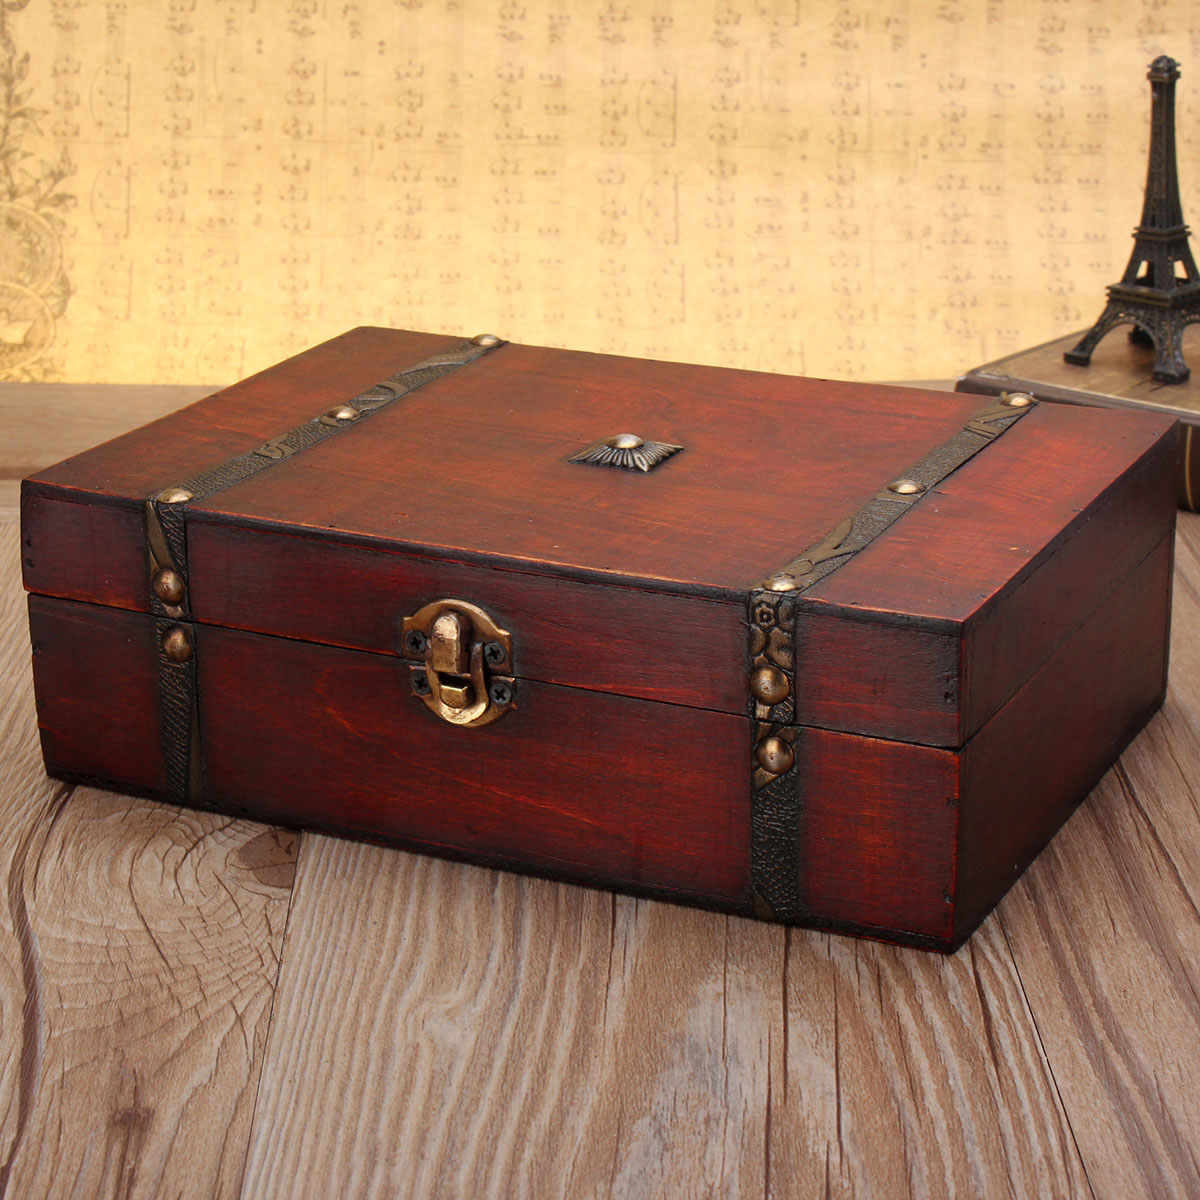 Big W Jewellery Box Large Vintage Wooden Storage Present Candy Gift Box